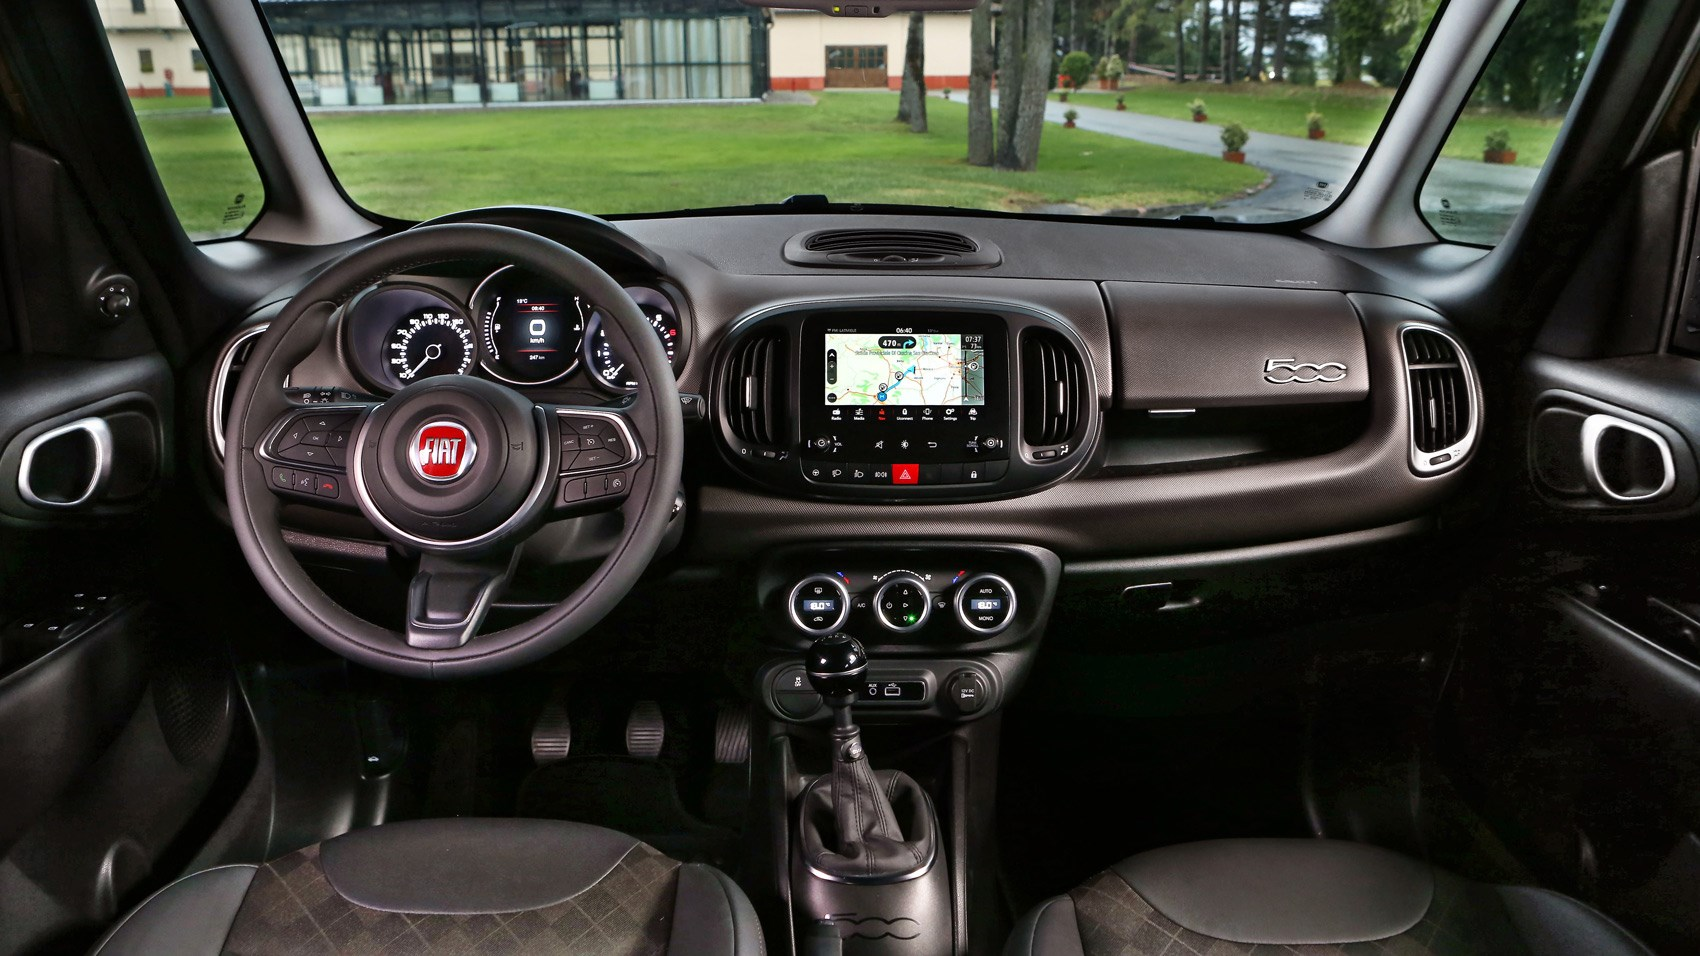 2016 Fiat 500 In Grandville Mi in addition Abarth together with Fiat 124 Spider Prices Specs And Release Date likewise 1096600 2016 Fiat 500x Small Crossover Suv To Start At 20900 moreover 2017 Fiat 124 Spider Priced 25990. on fiat 500 fuel economy